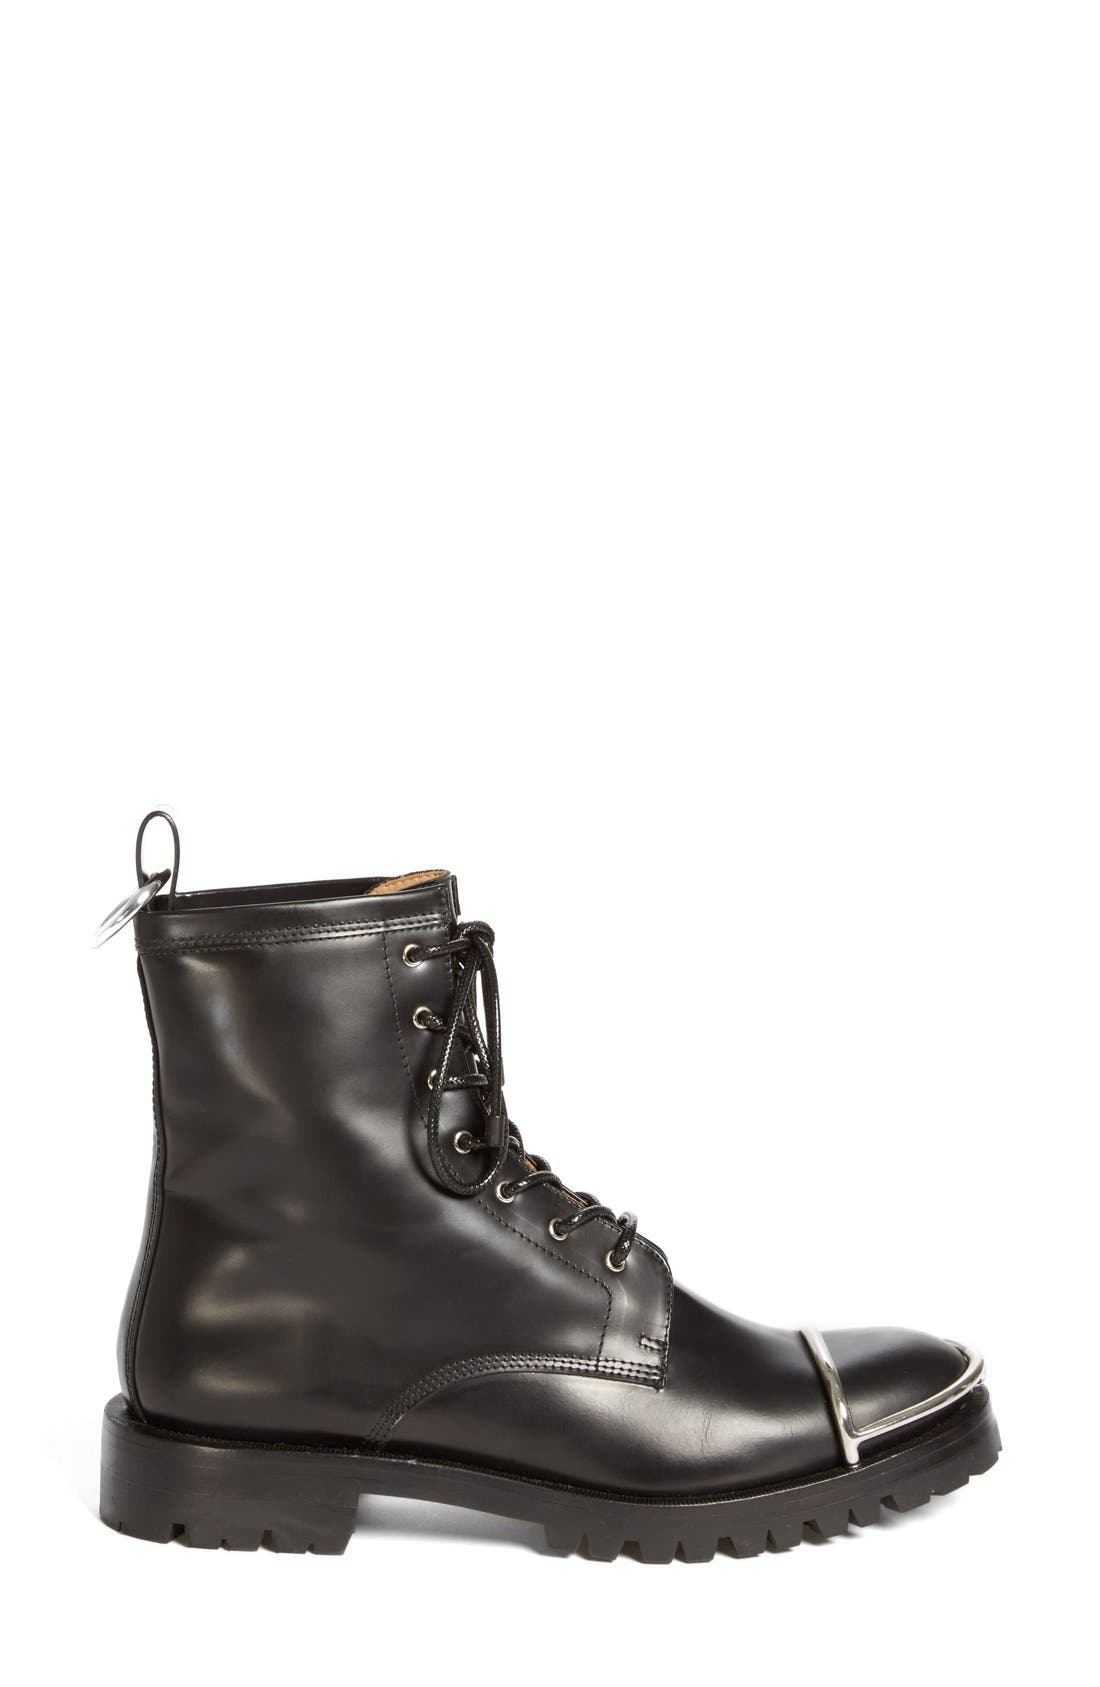 Alternate Image 3  - Alexander Wang 'Lyndon' Military Boot (Women)